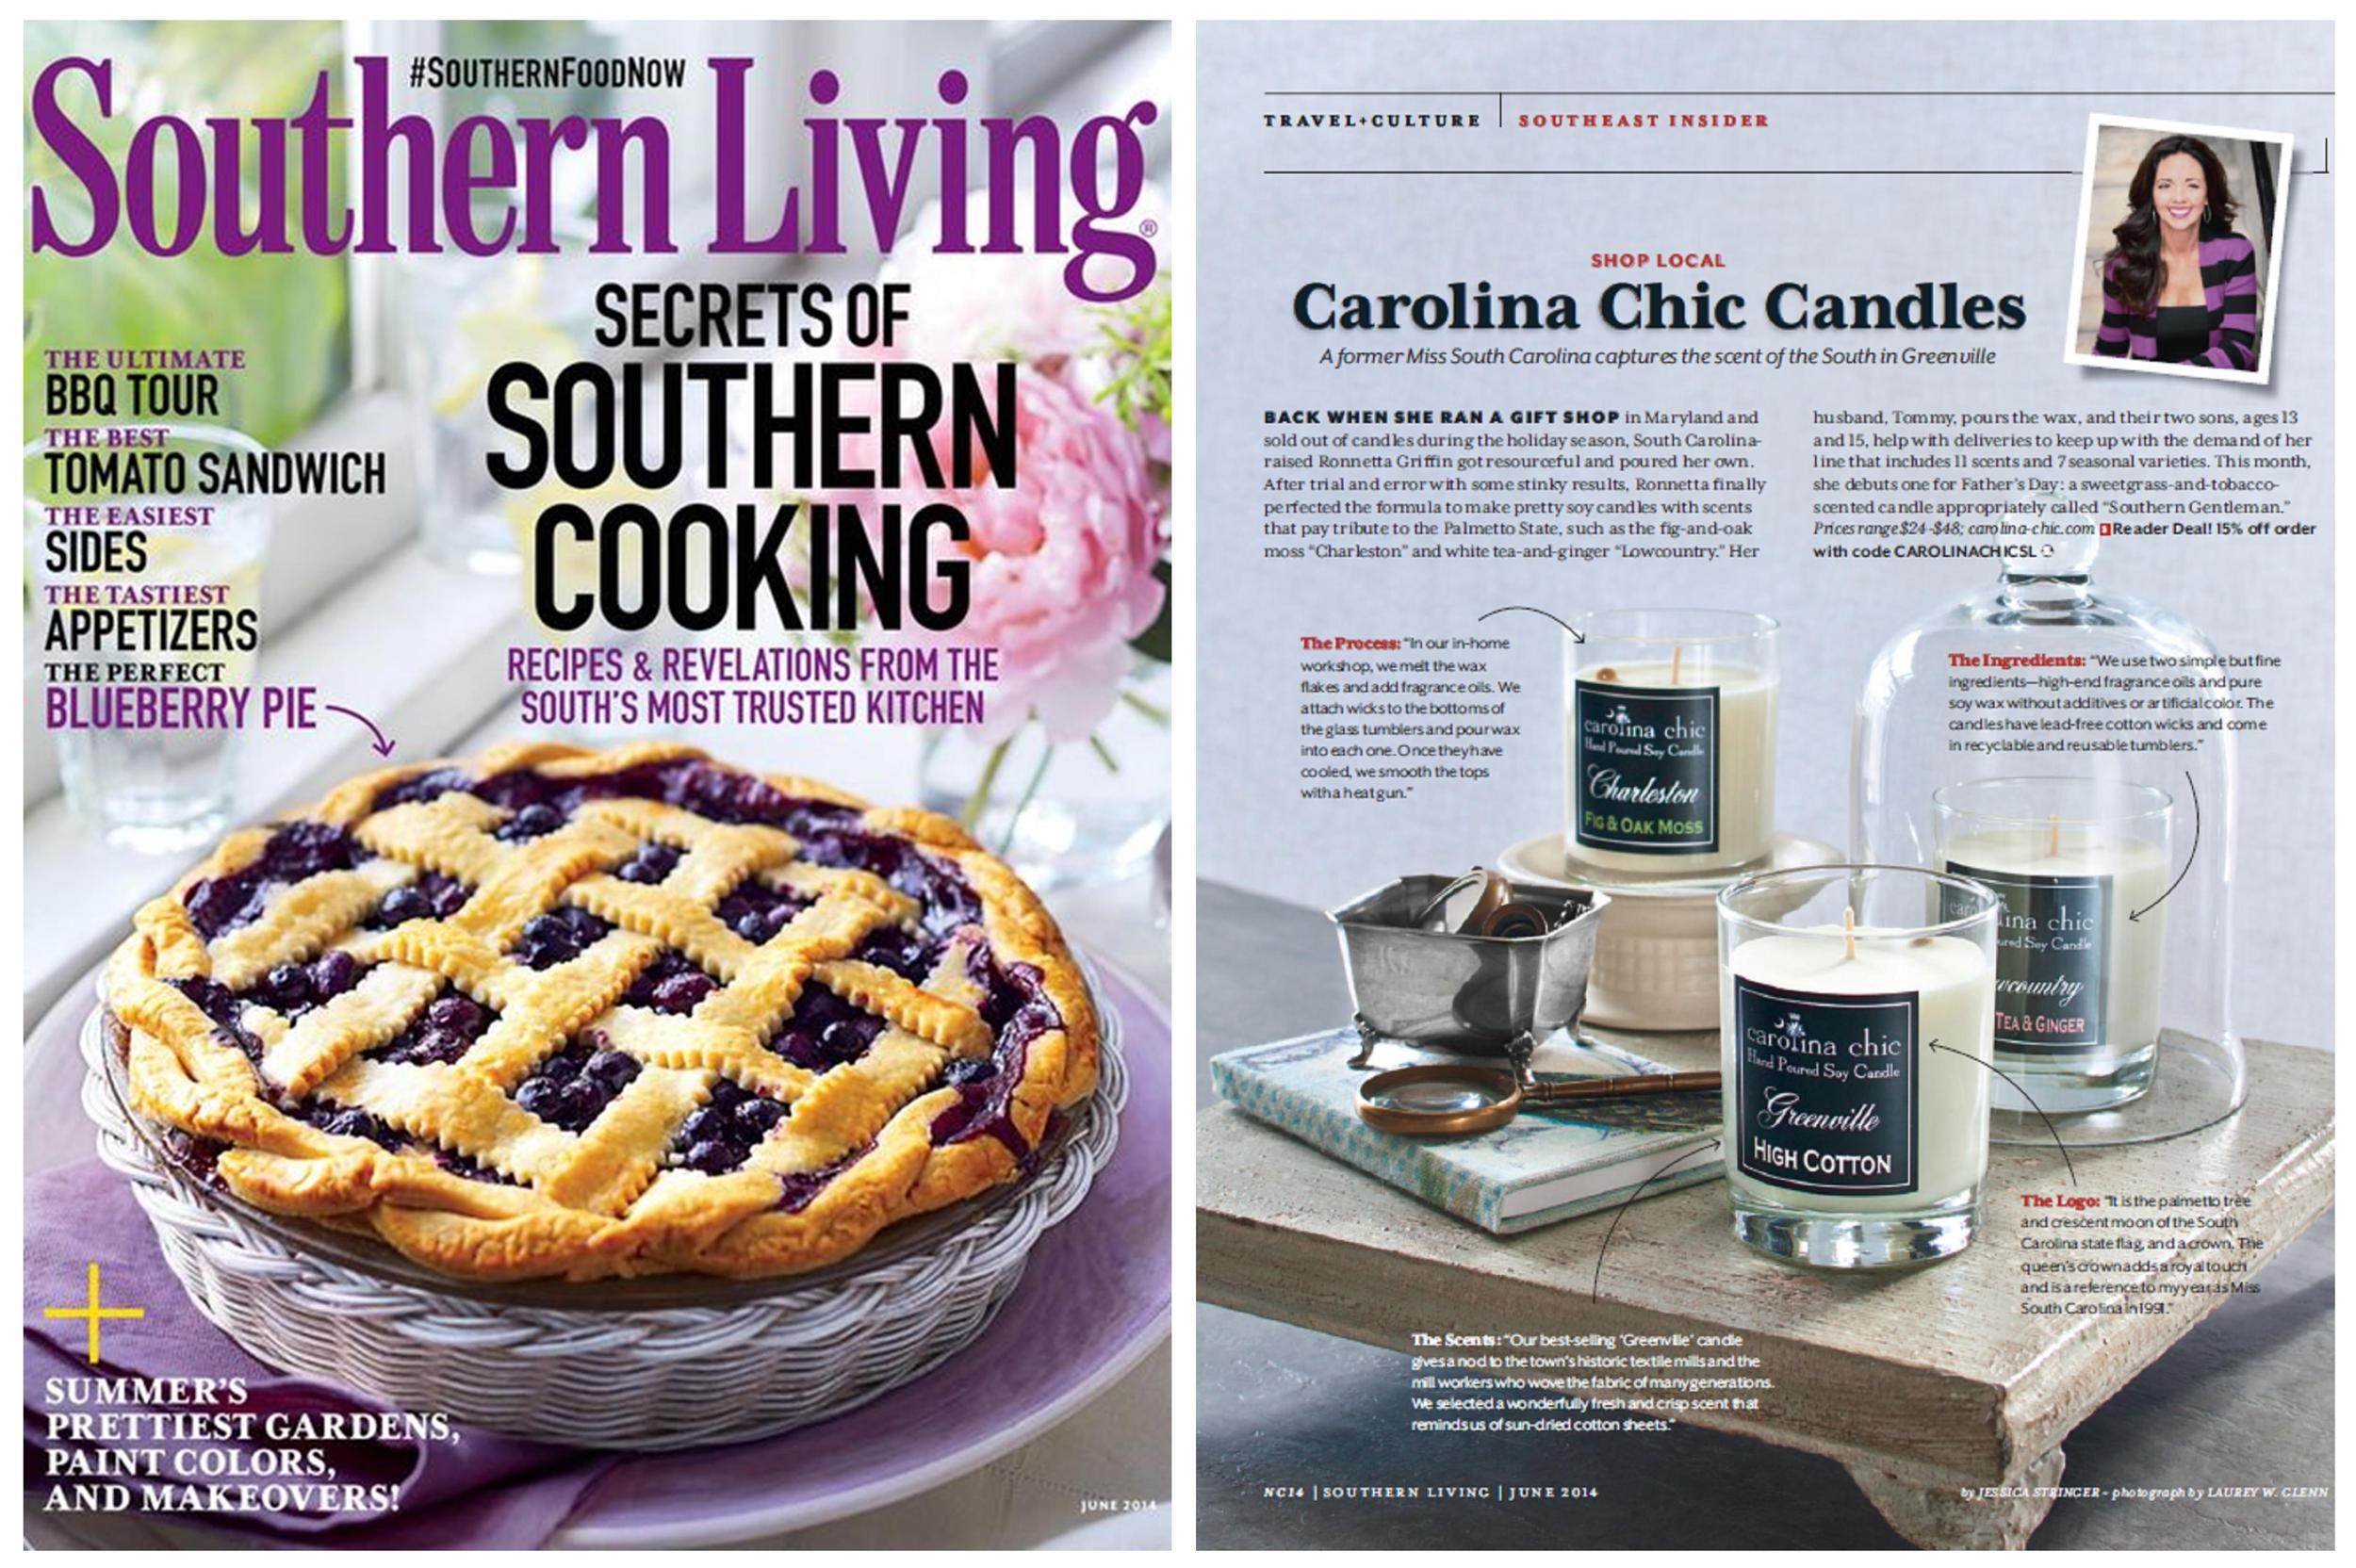 Southern Living, June 2014